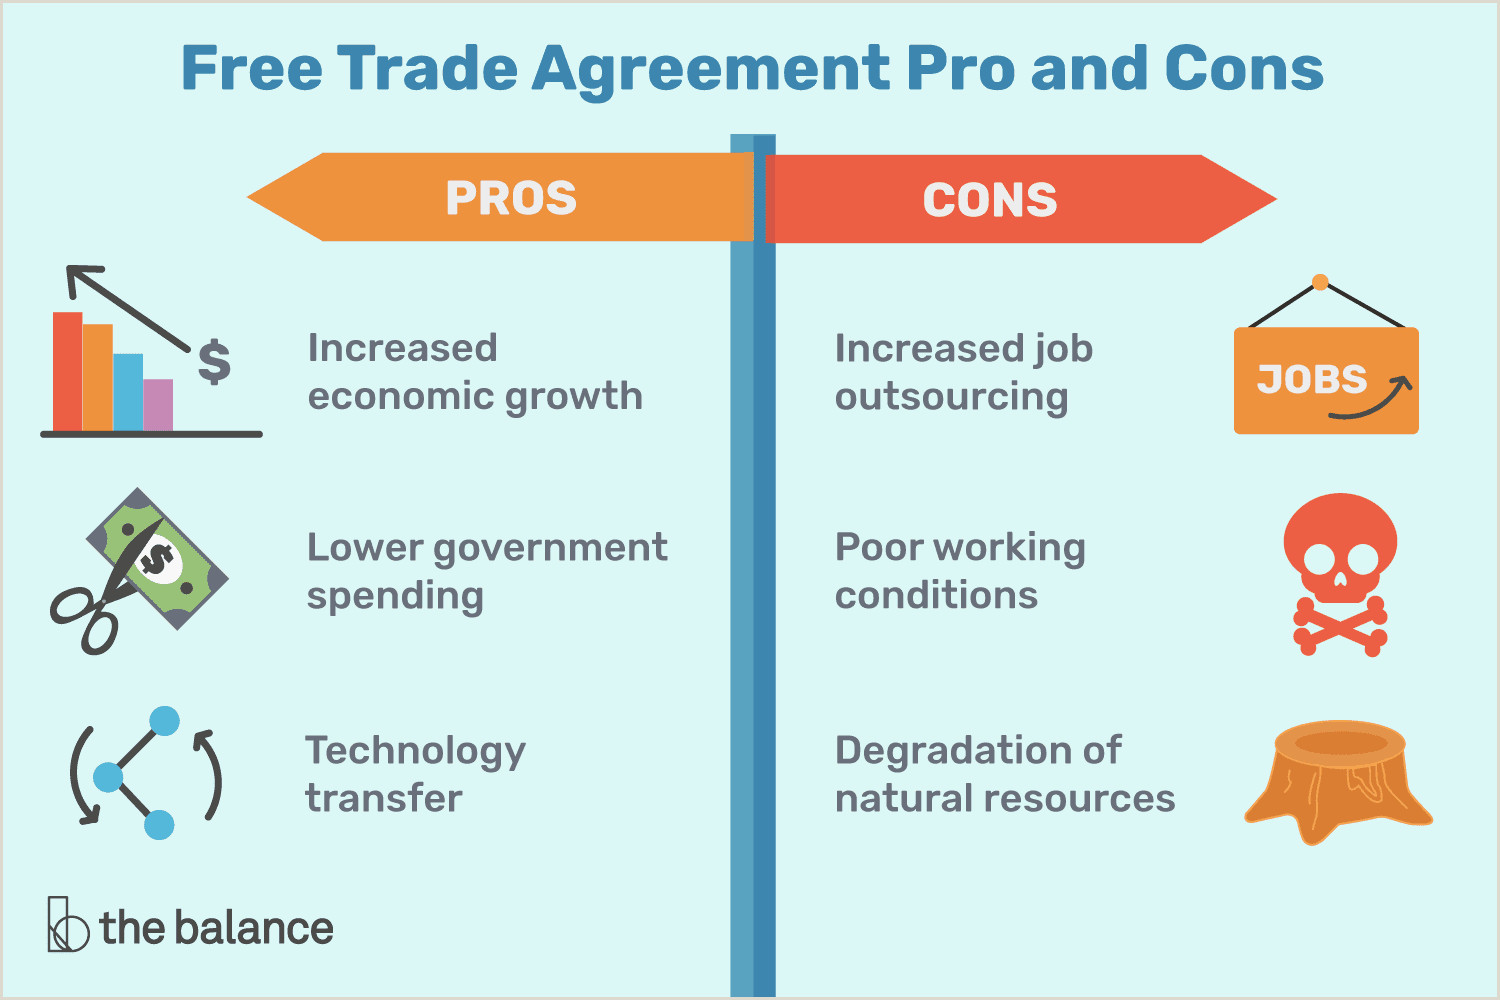 B Positive Food List Free Trade Agreement Pros and Cons